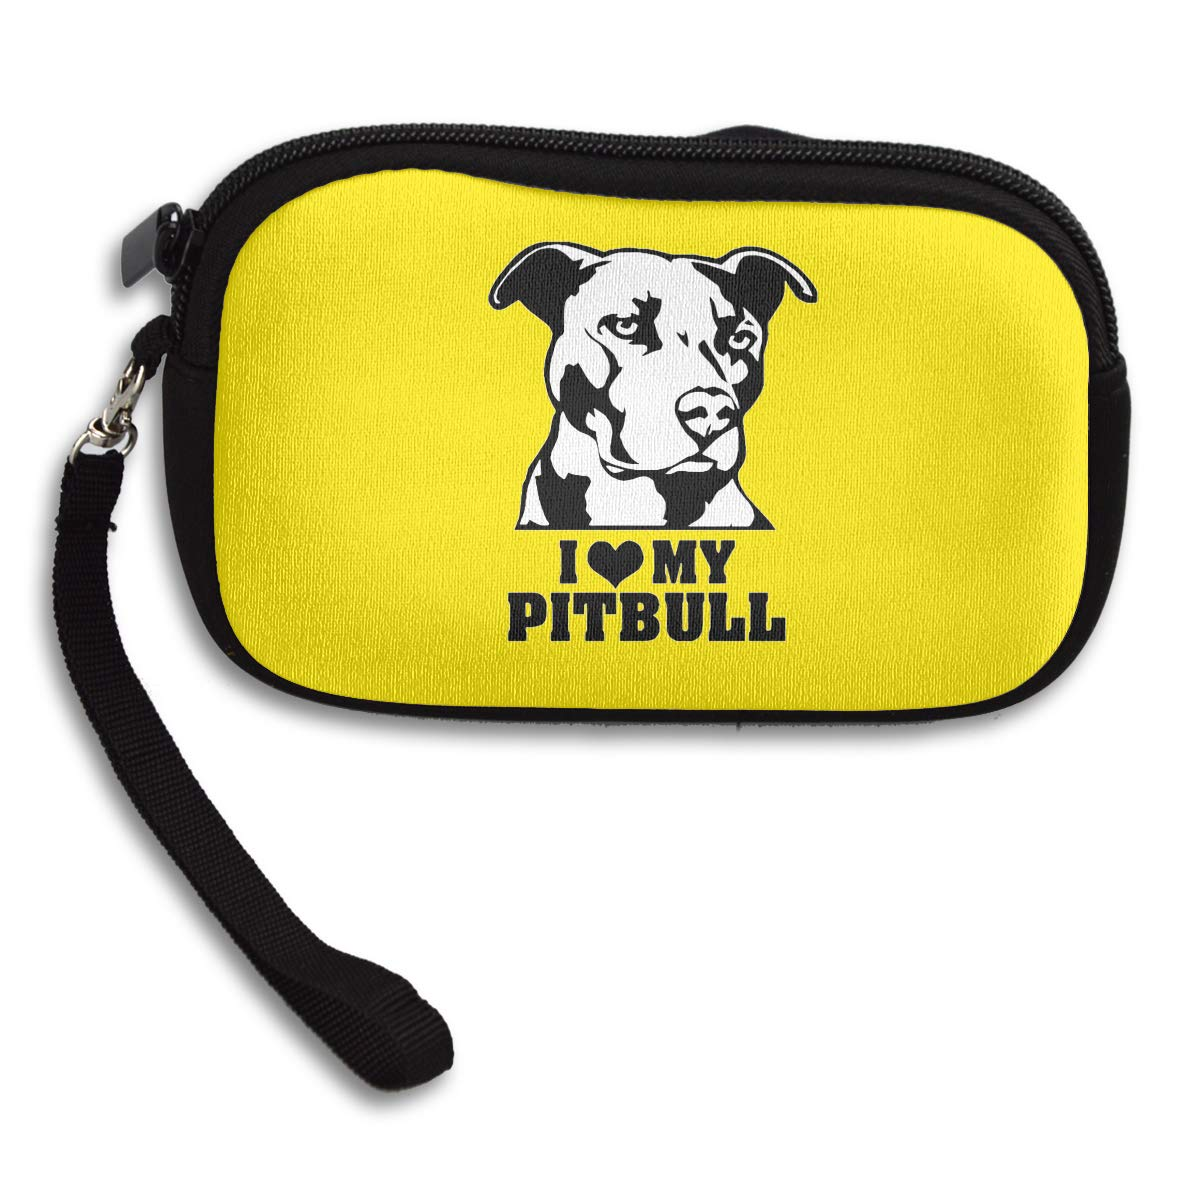 I Love My Pitbull Staffy Terrier Dog Womens Travel Wallet Bags Change Purses